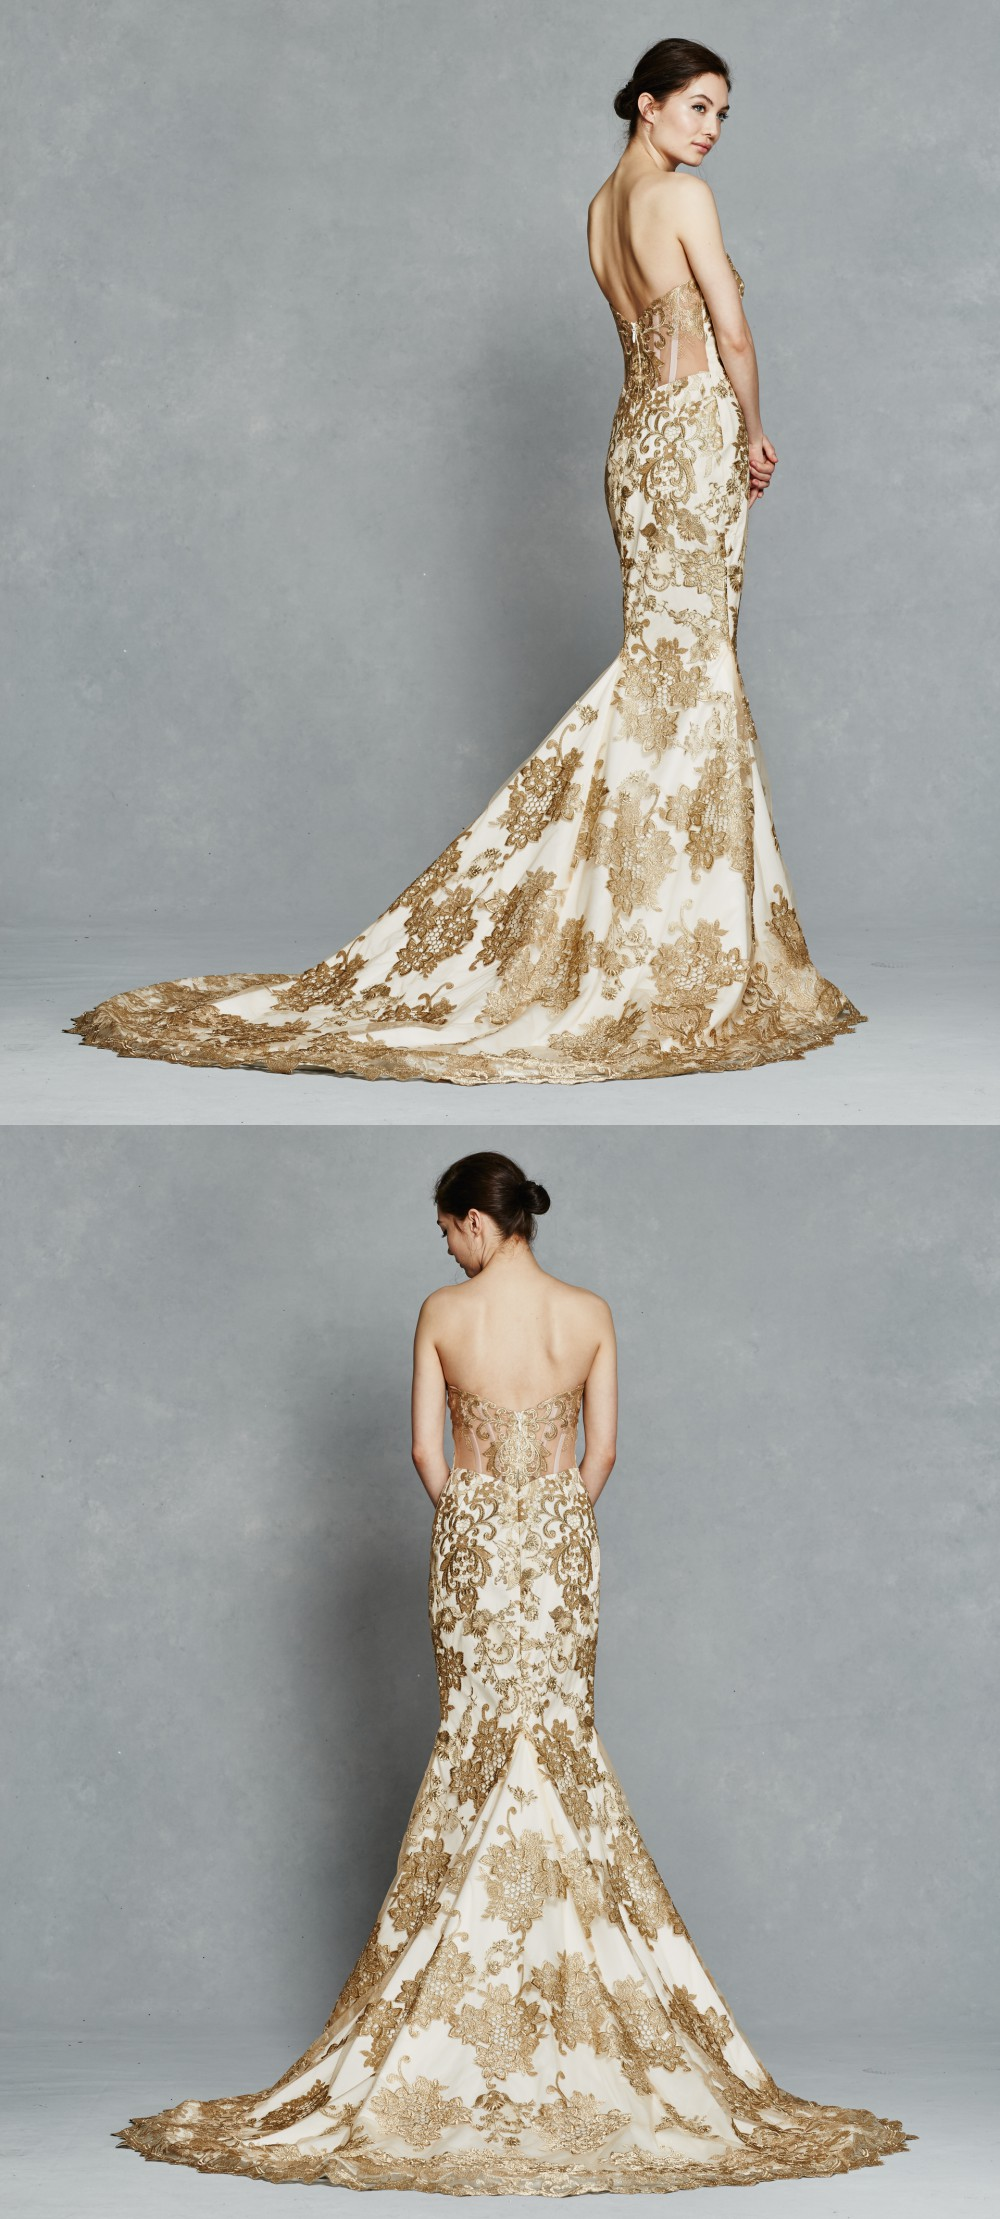 Gold lace strapless wedding dress| Gwendelyn